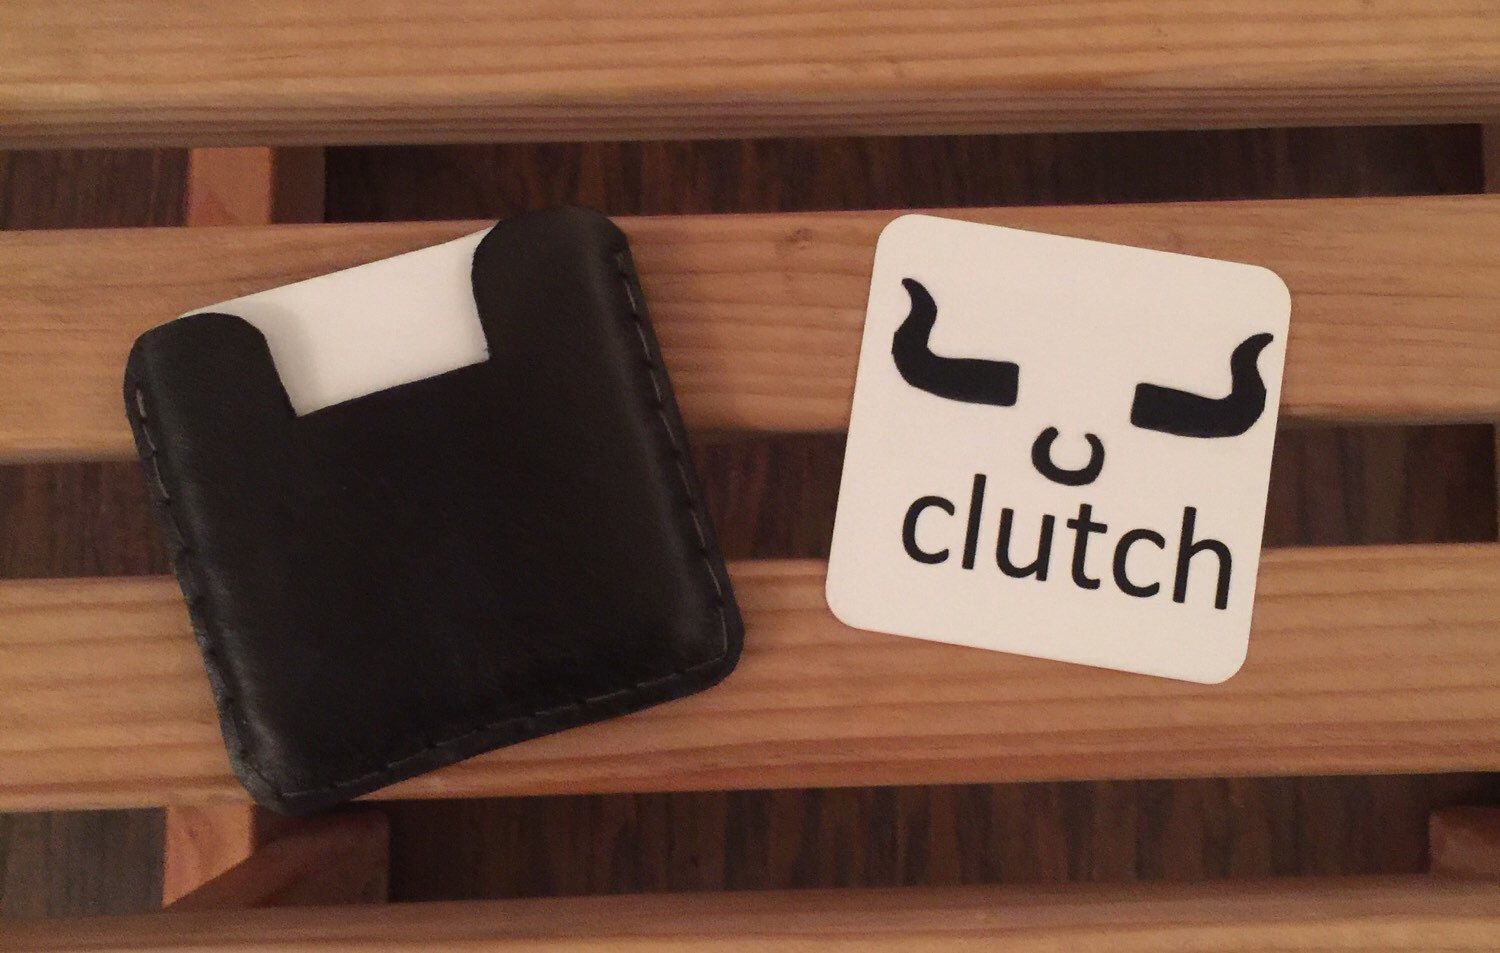 25 x 25 square business card holder by clutchleather on etsy https 25 x 25 square business card holder colourmoves Images